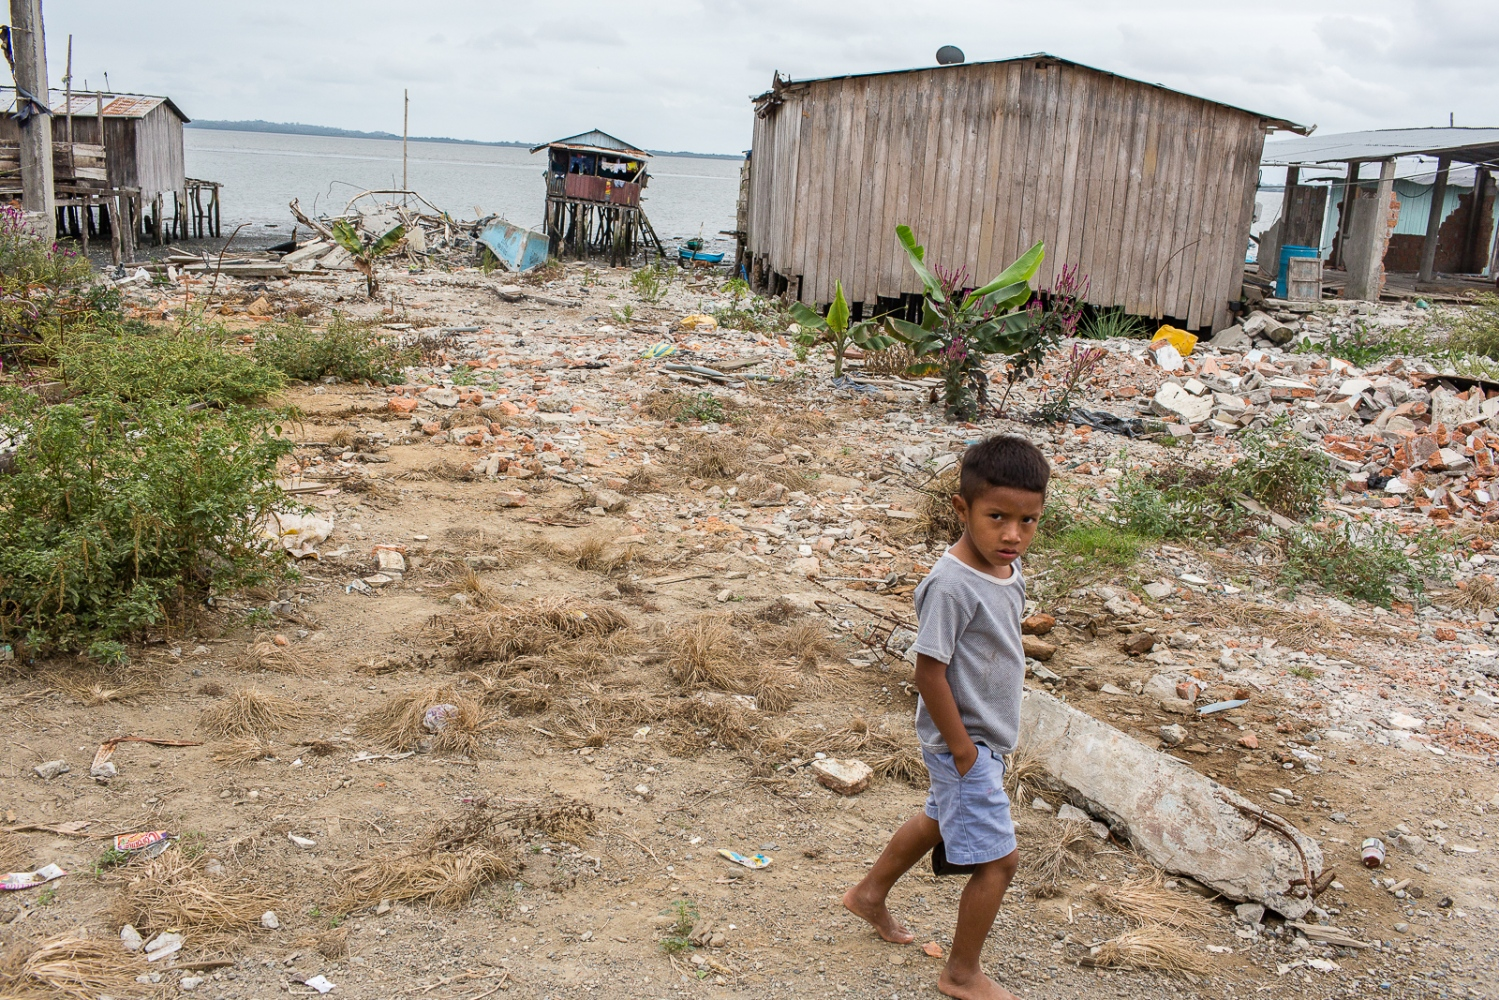 A boy passes in front of place where before many families lived on the coast of Chamanga. The Ecuadorian Government doesn't want to rebuild houses on the coast of Chamanga since it is consider a high-risk area, something that the locals deny. The earthquake reached the magnitude of 7.8 on the Richter scale hit the Ecuadorian coast, where more than a million and half of people live, circa 10% of the total population of the country. On the aftermath, 4,859 were injured and 671 died, mostly because of the collapse of buildings. The areas affected are in a vulnerable socio-economic position, with levels of extreme poverty in some cases, which contributed to the high number of injured and perish people.